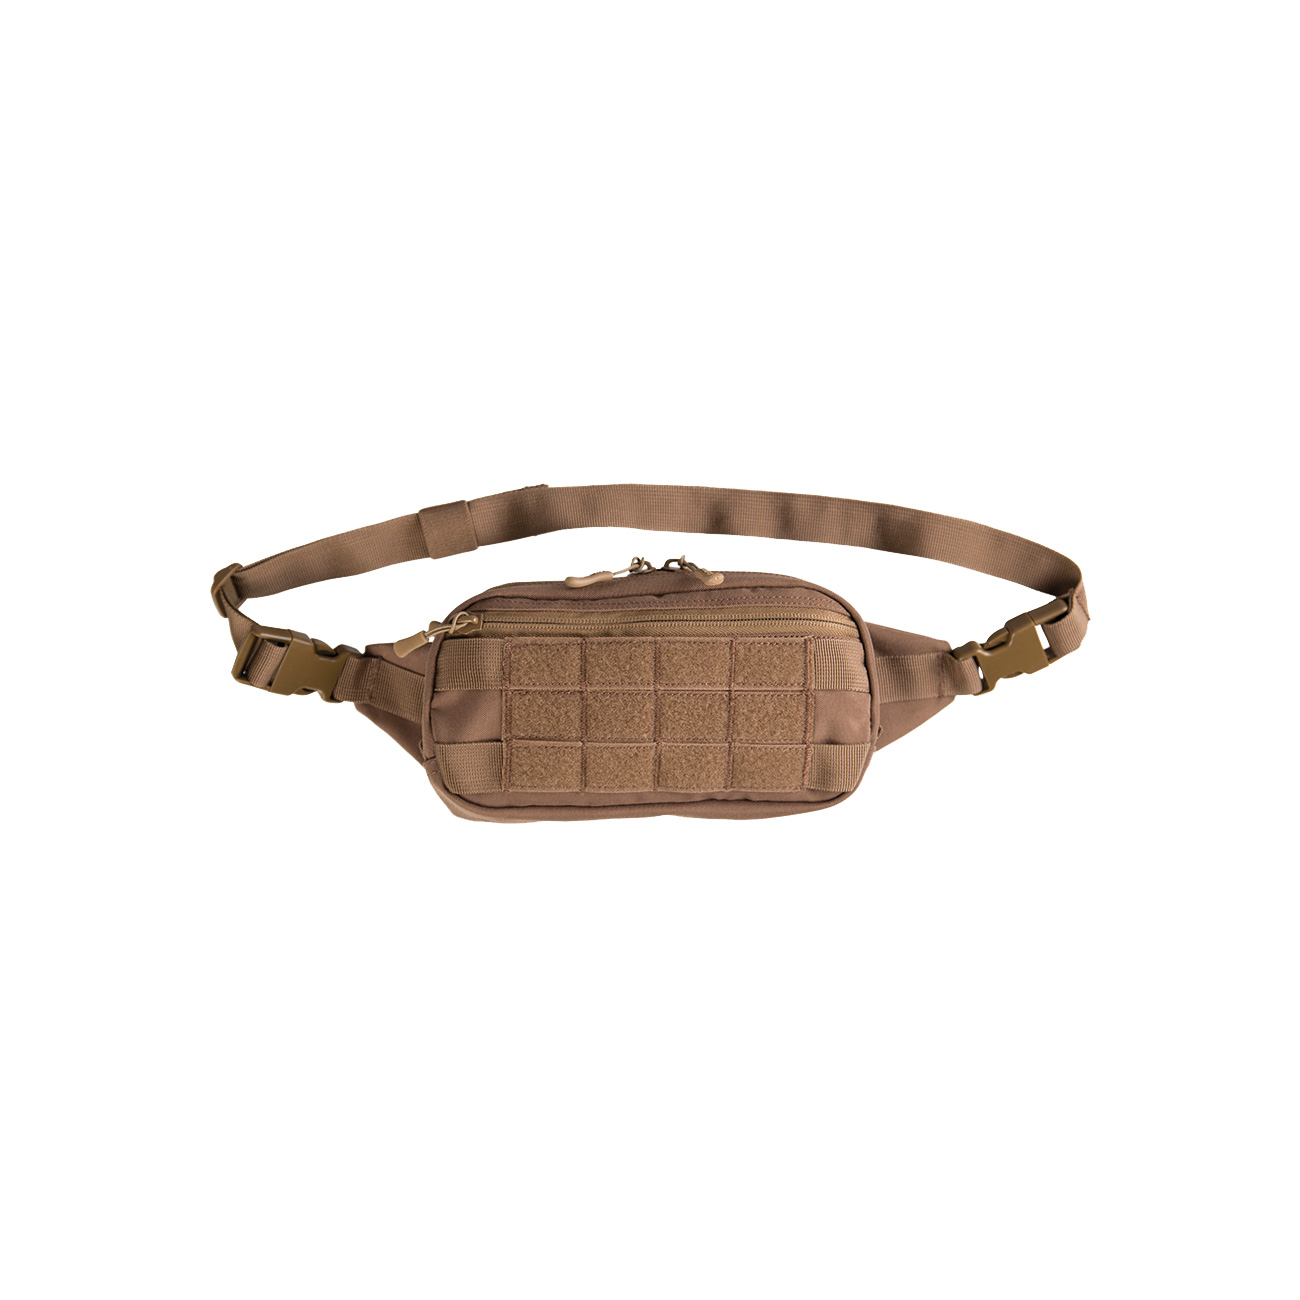 Mil-Tec Bauchtasche Molle coyote 0